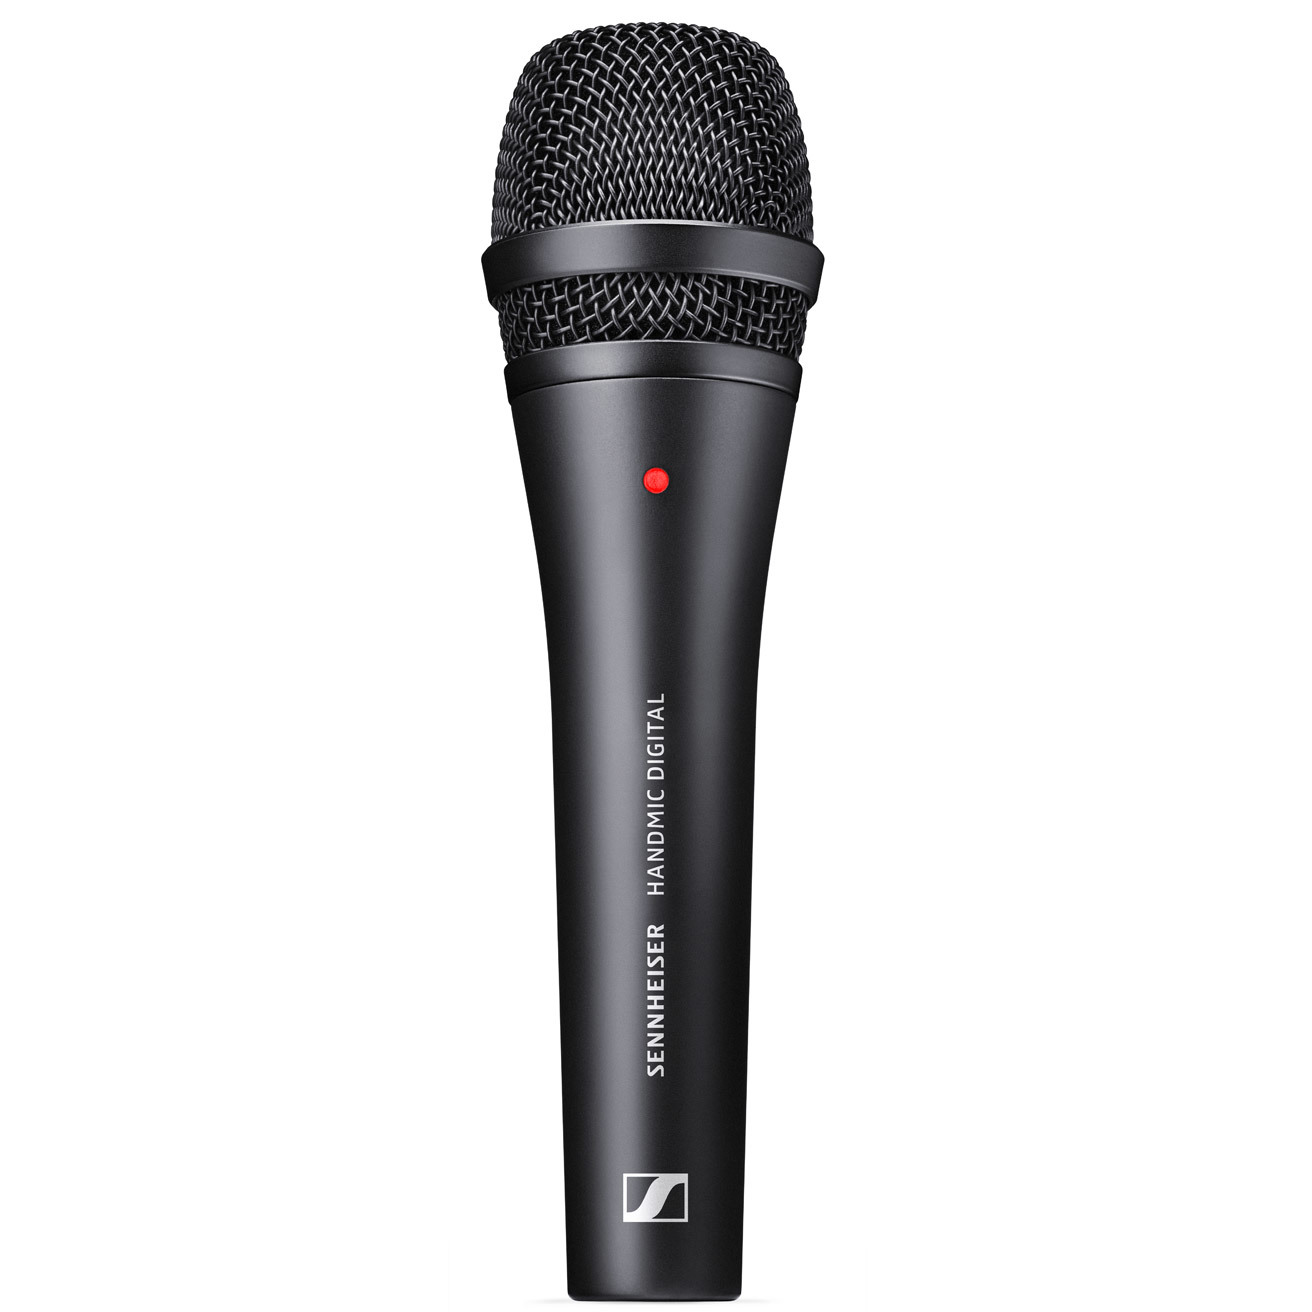 Sennheiser HandMic Digital 動圈式手持麥克風